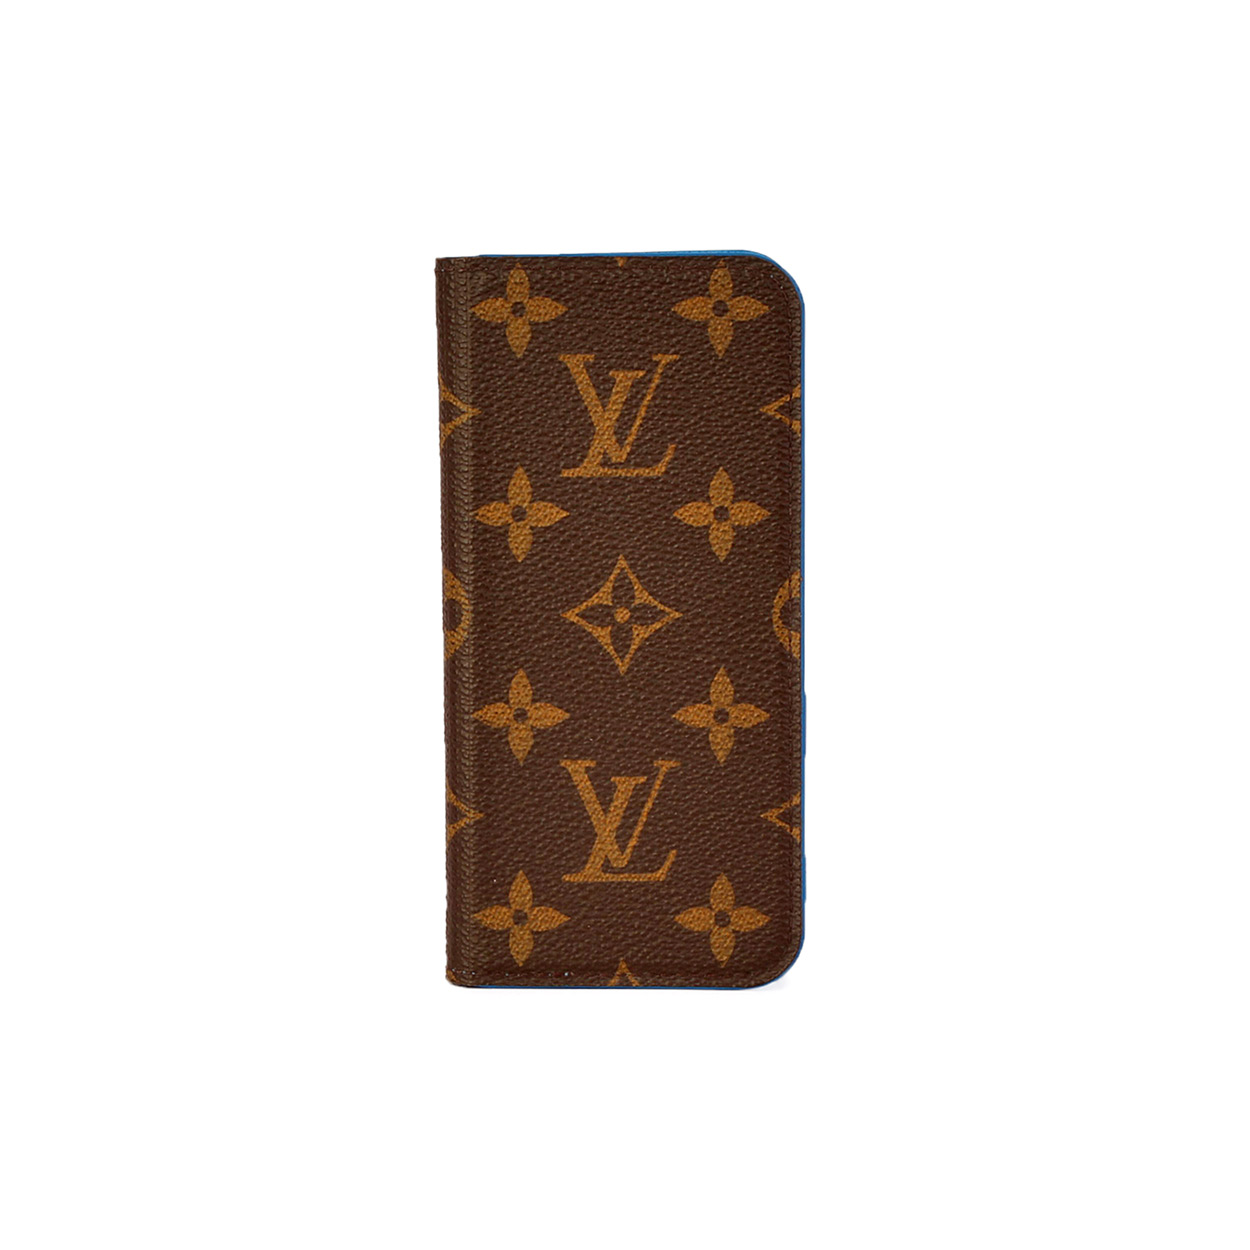 LOUIS VUITTON Monogram iPhone 6 Cell Phone Pouch